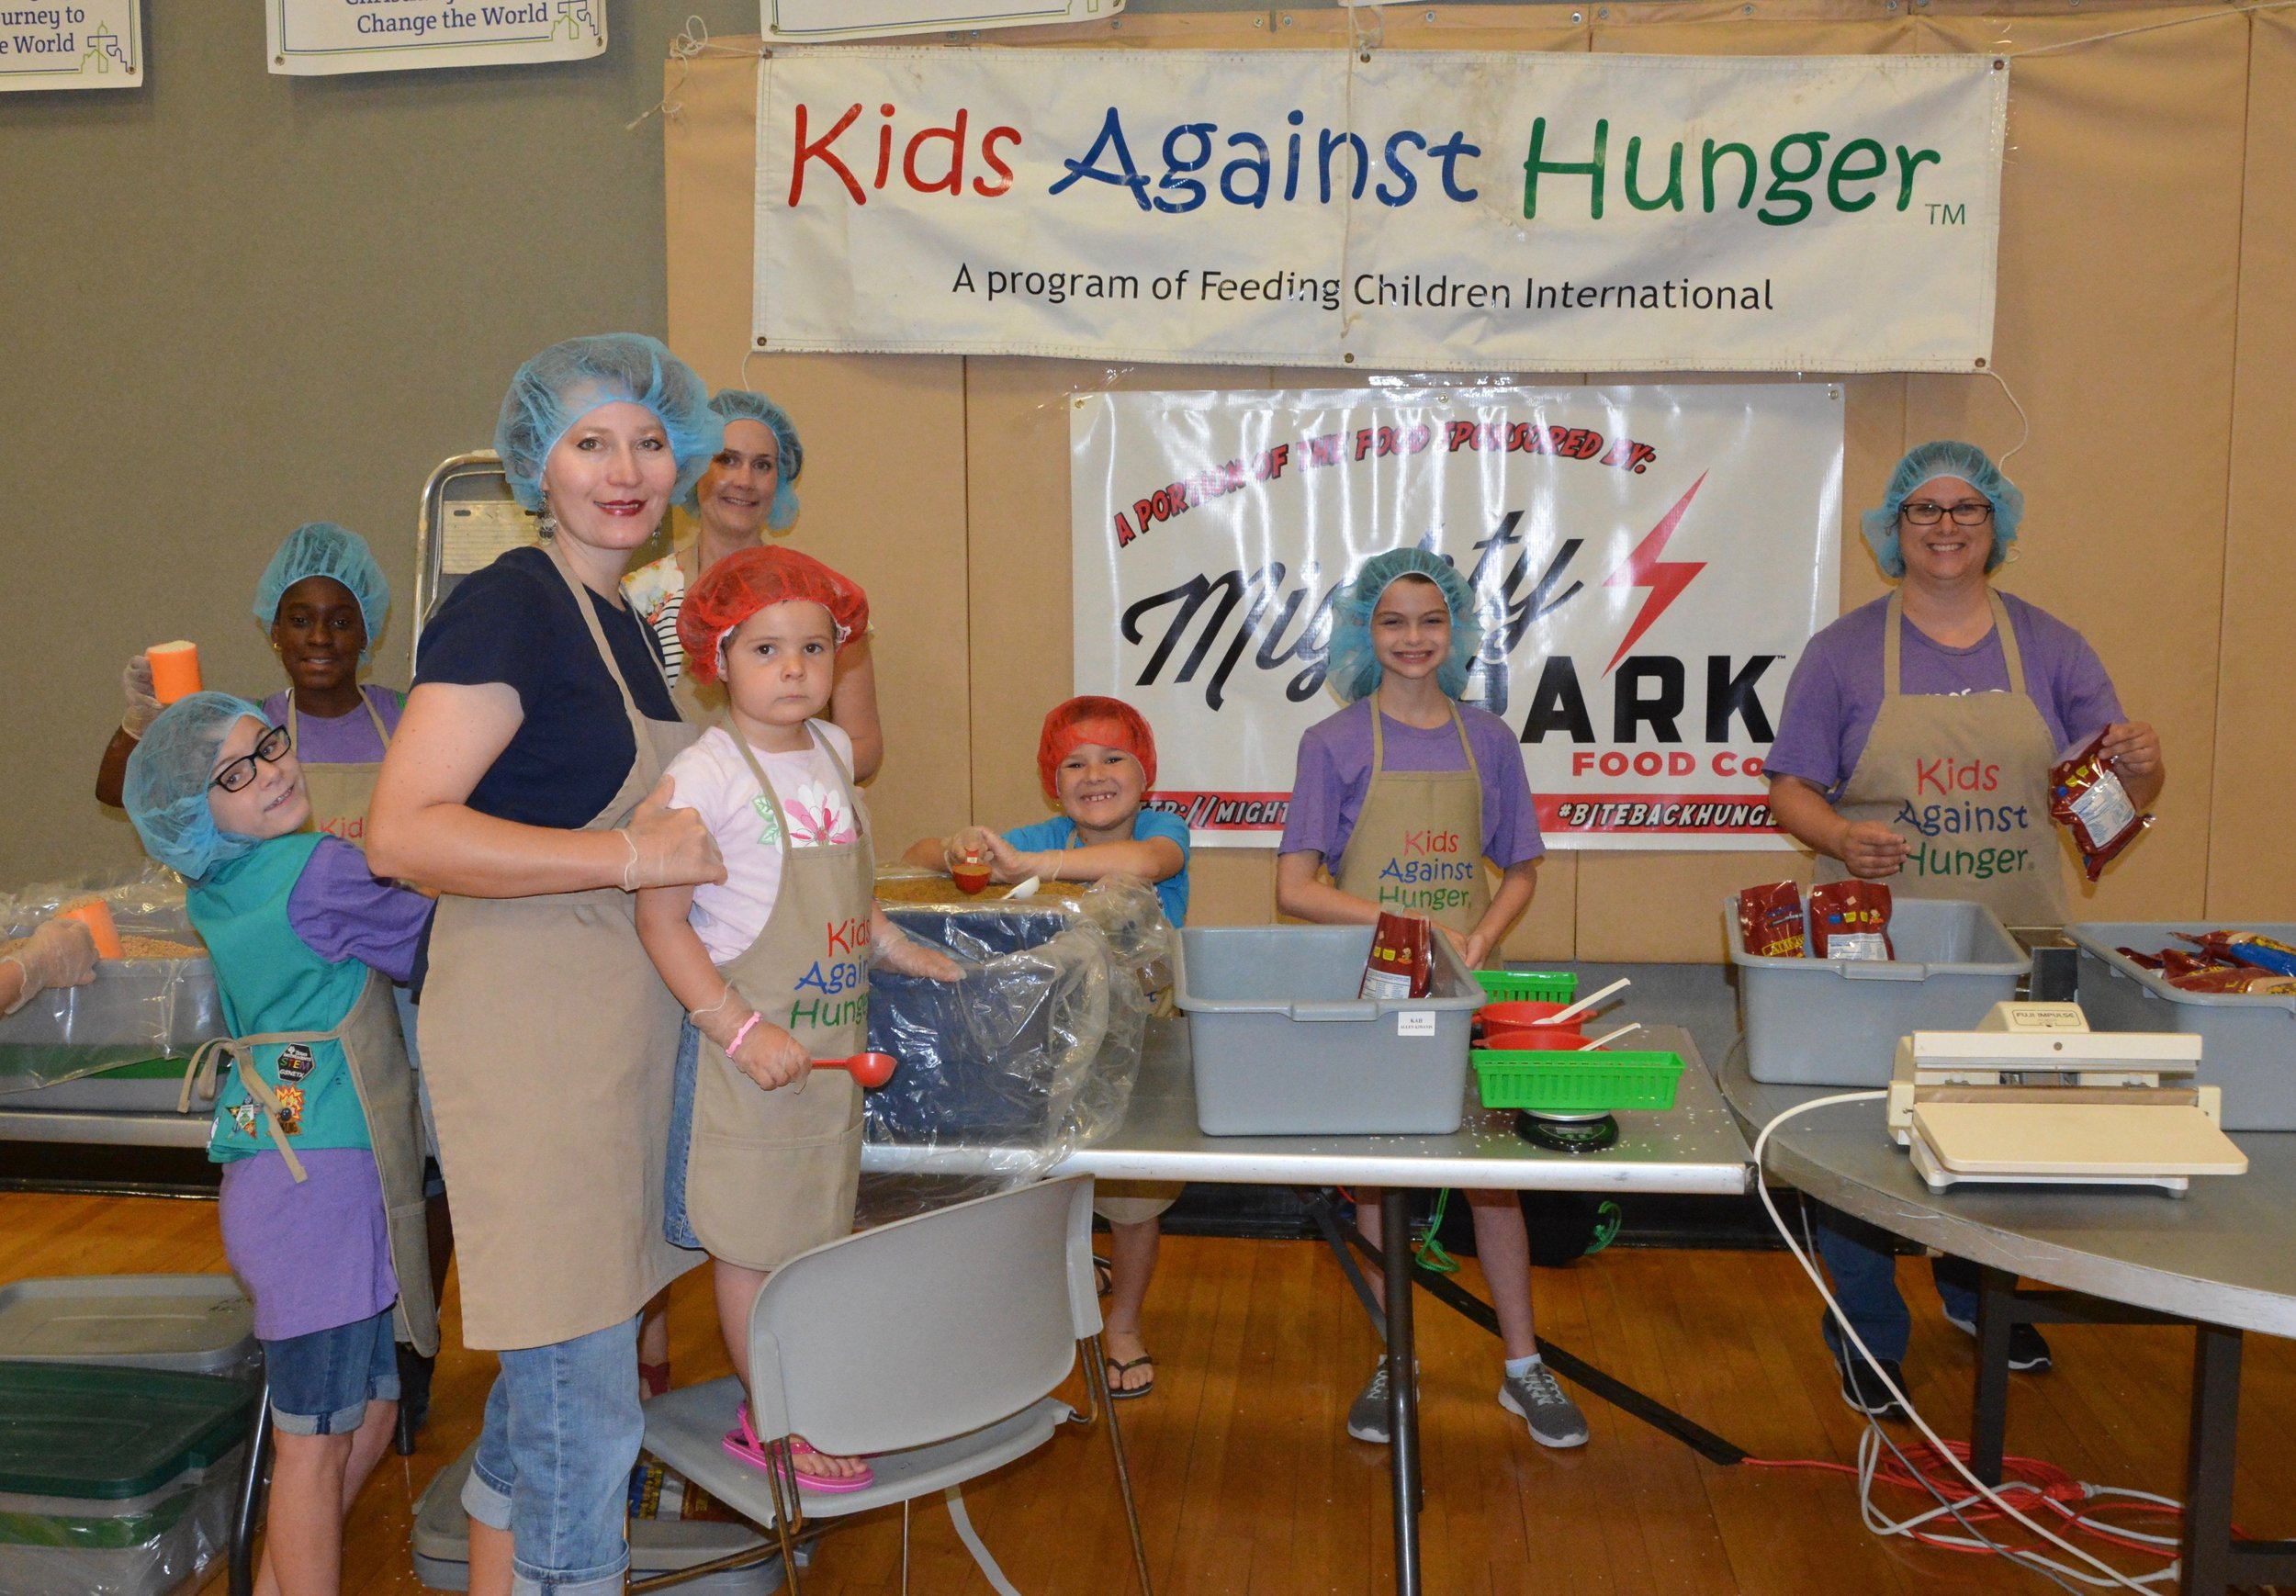 12,000 meals were prepared for Kids Against Hunger last year.